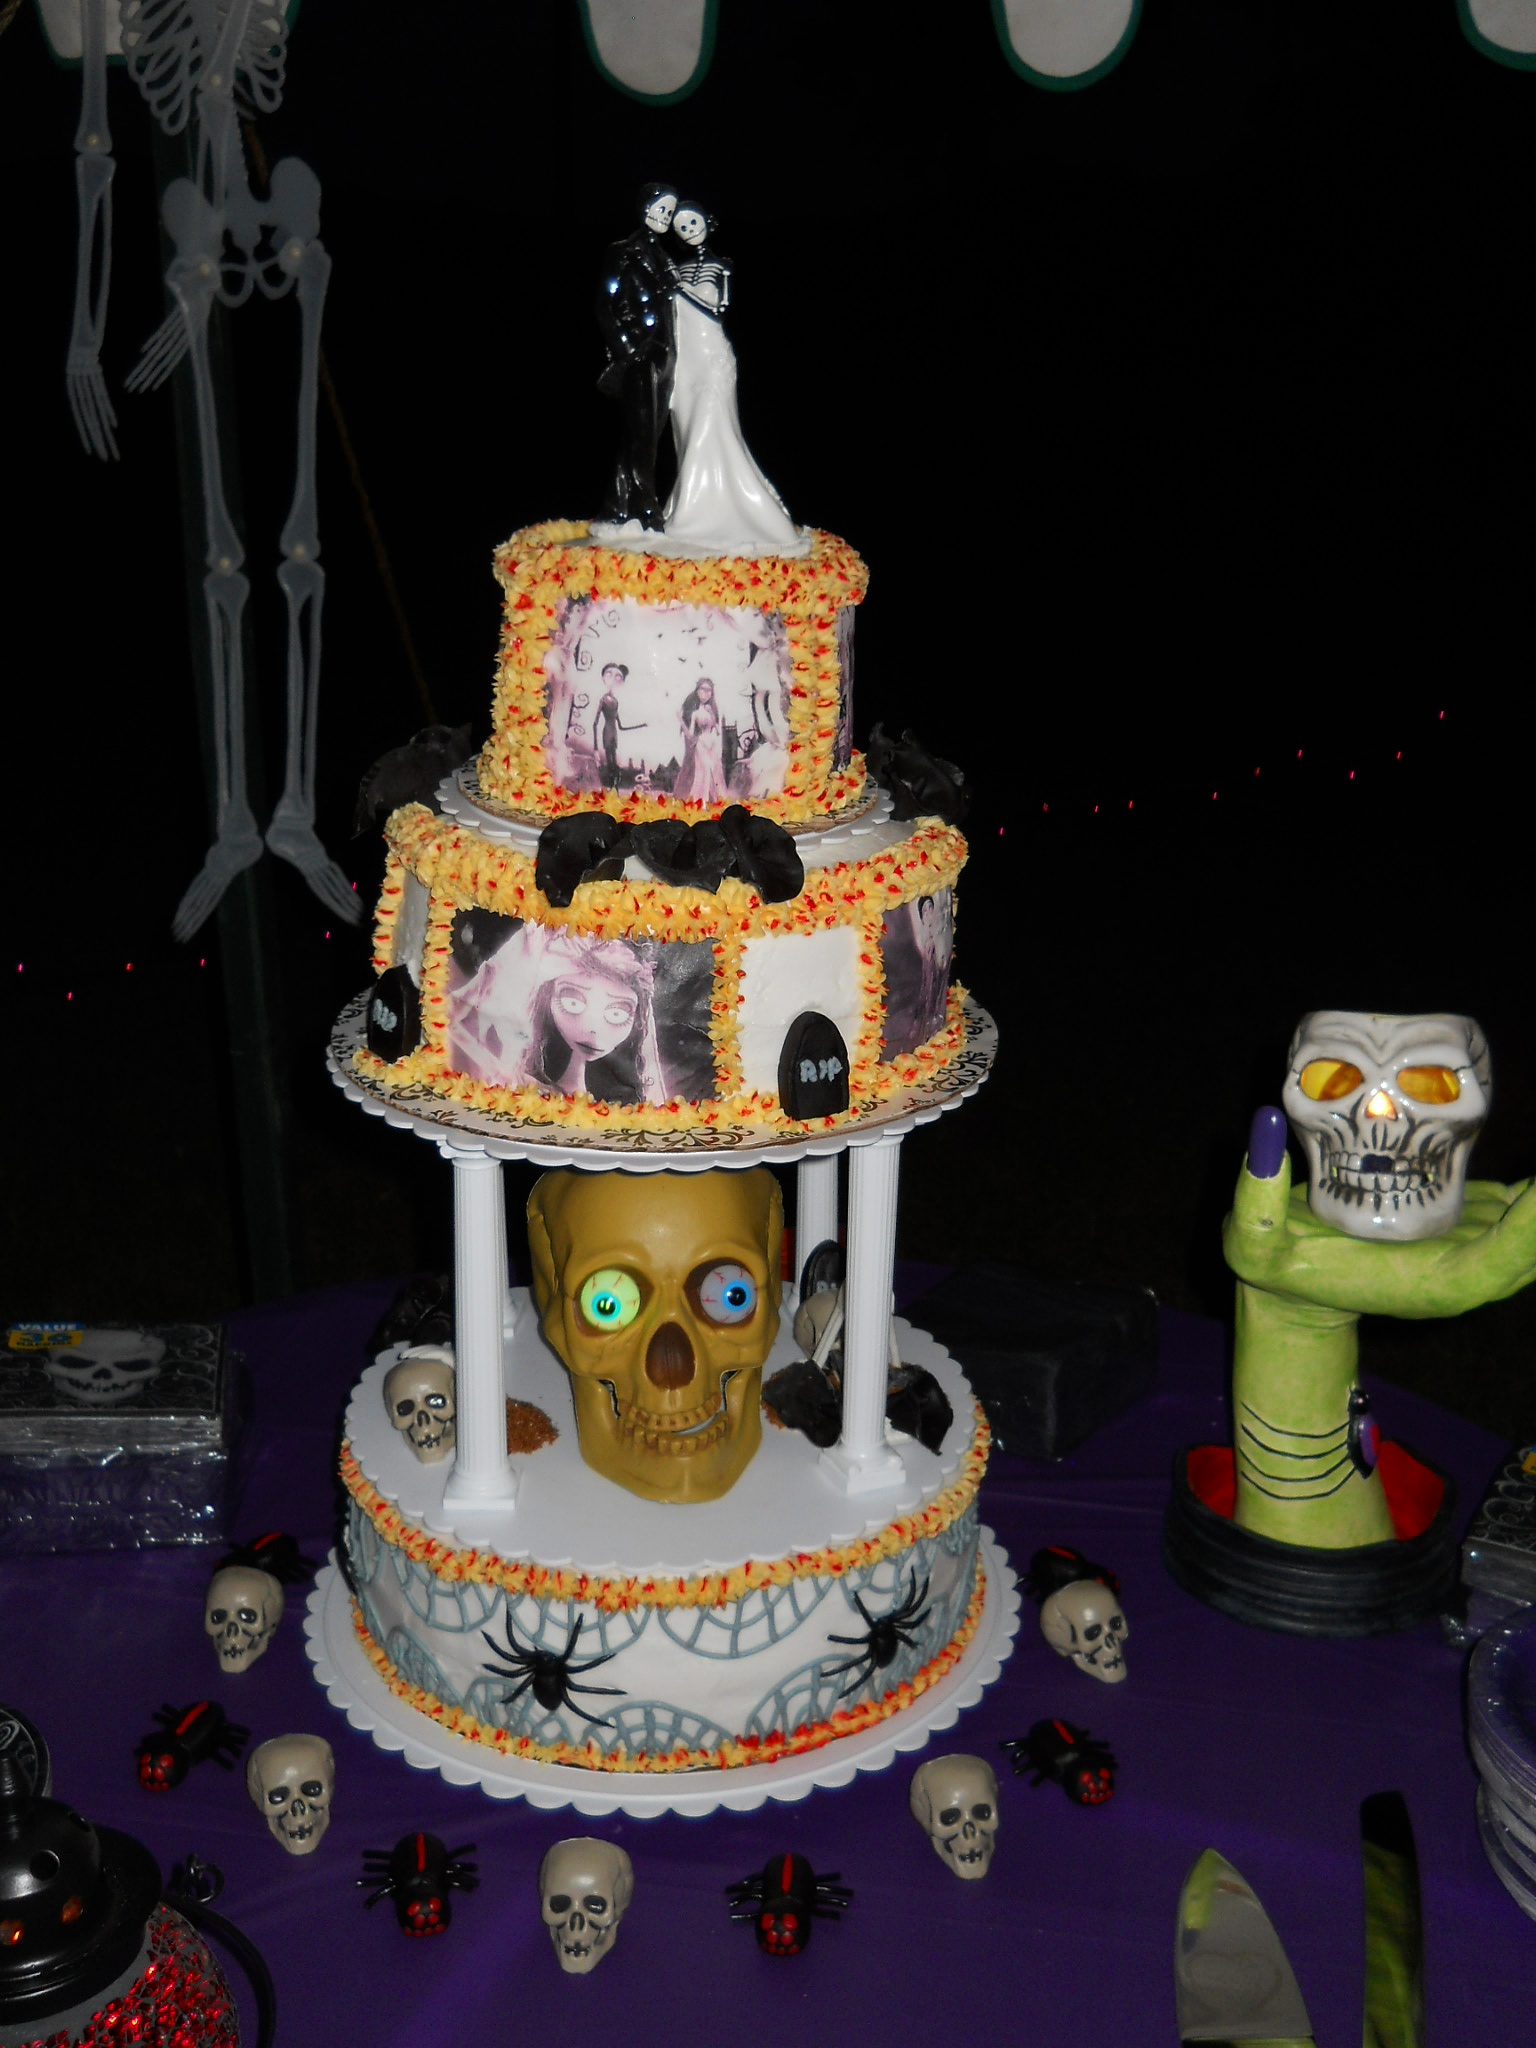 Halloween Wedding Cake by Susie Price Williams